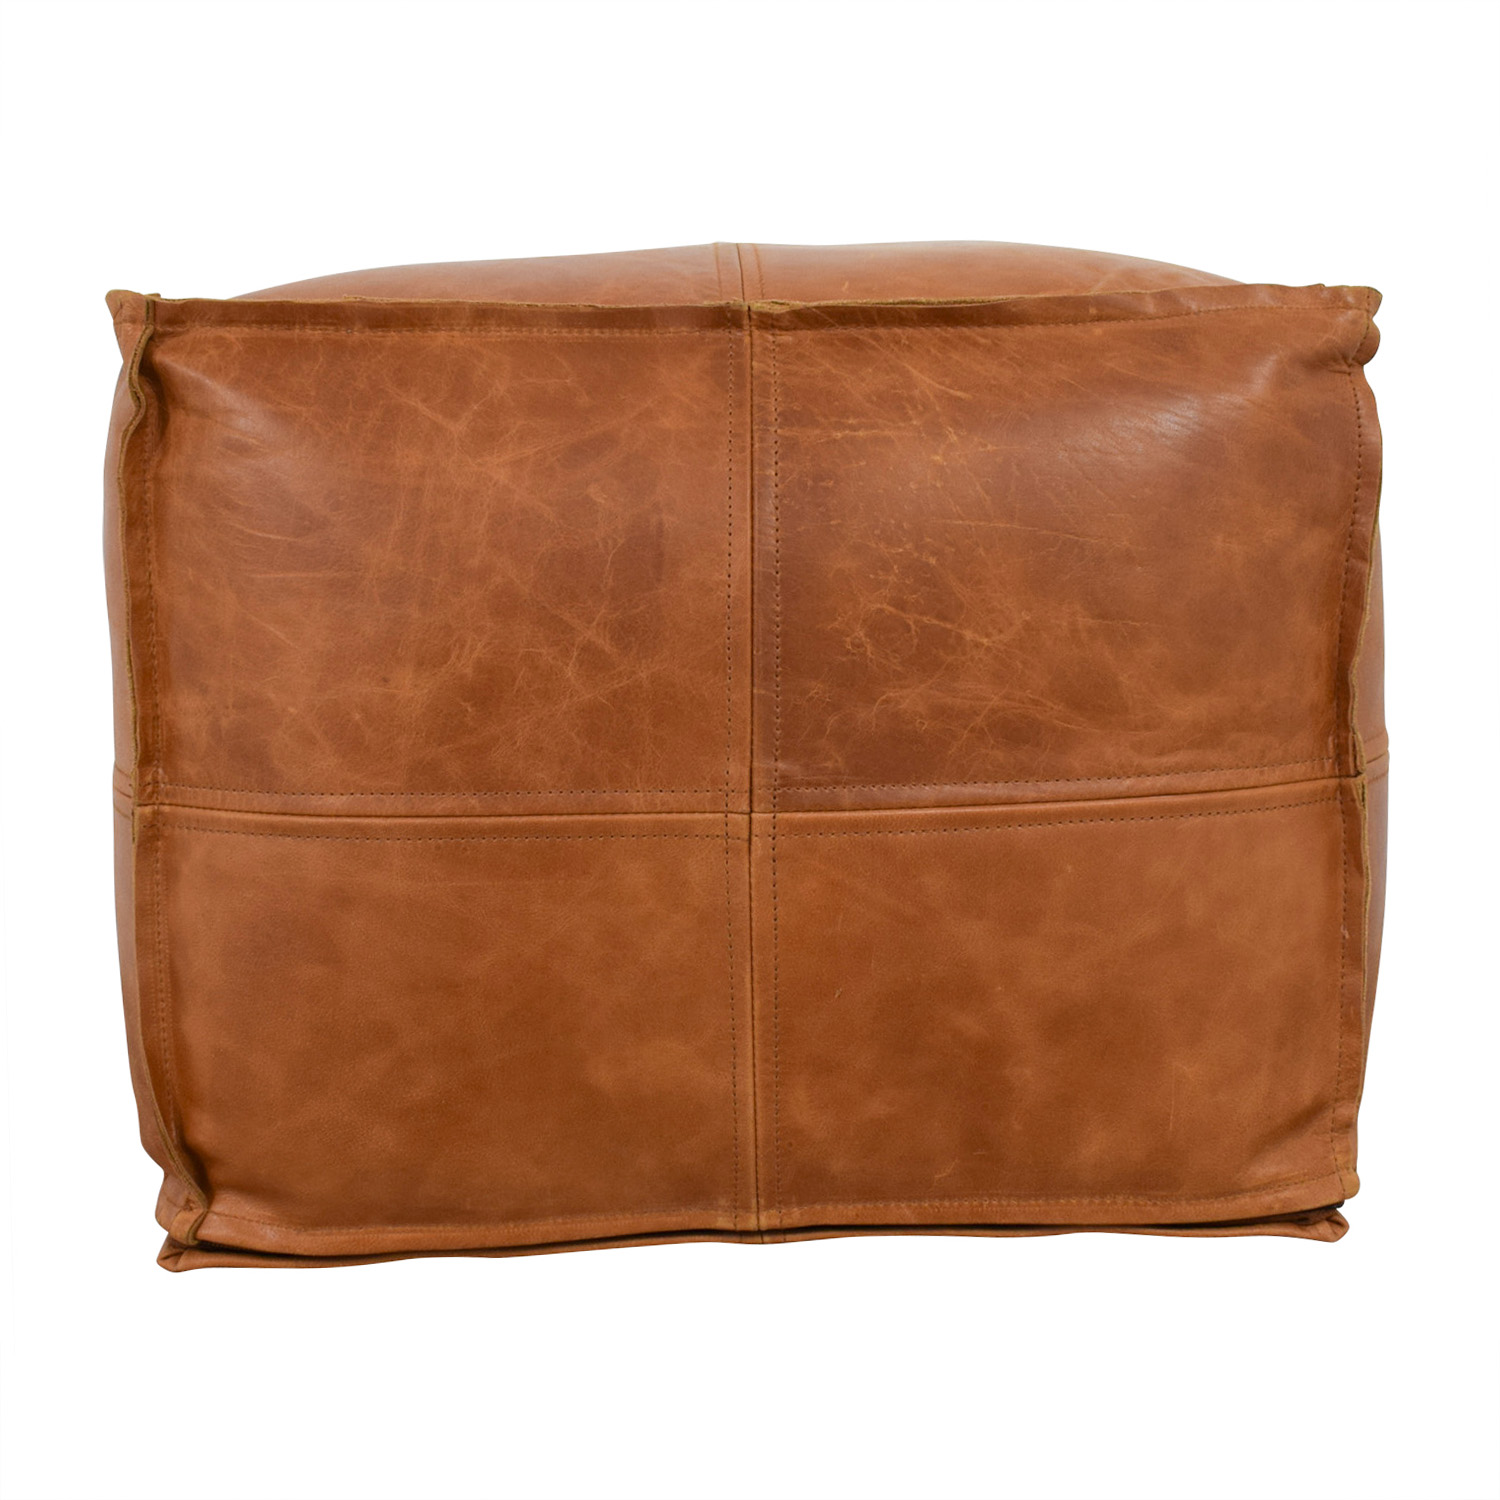 buy CB2 CB2 Saddle Brown Leather Pouf online